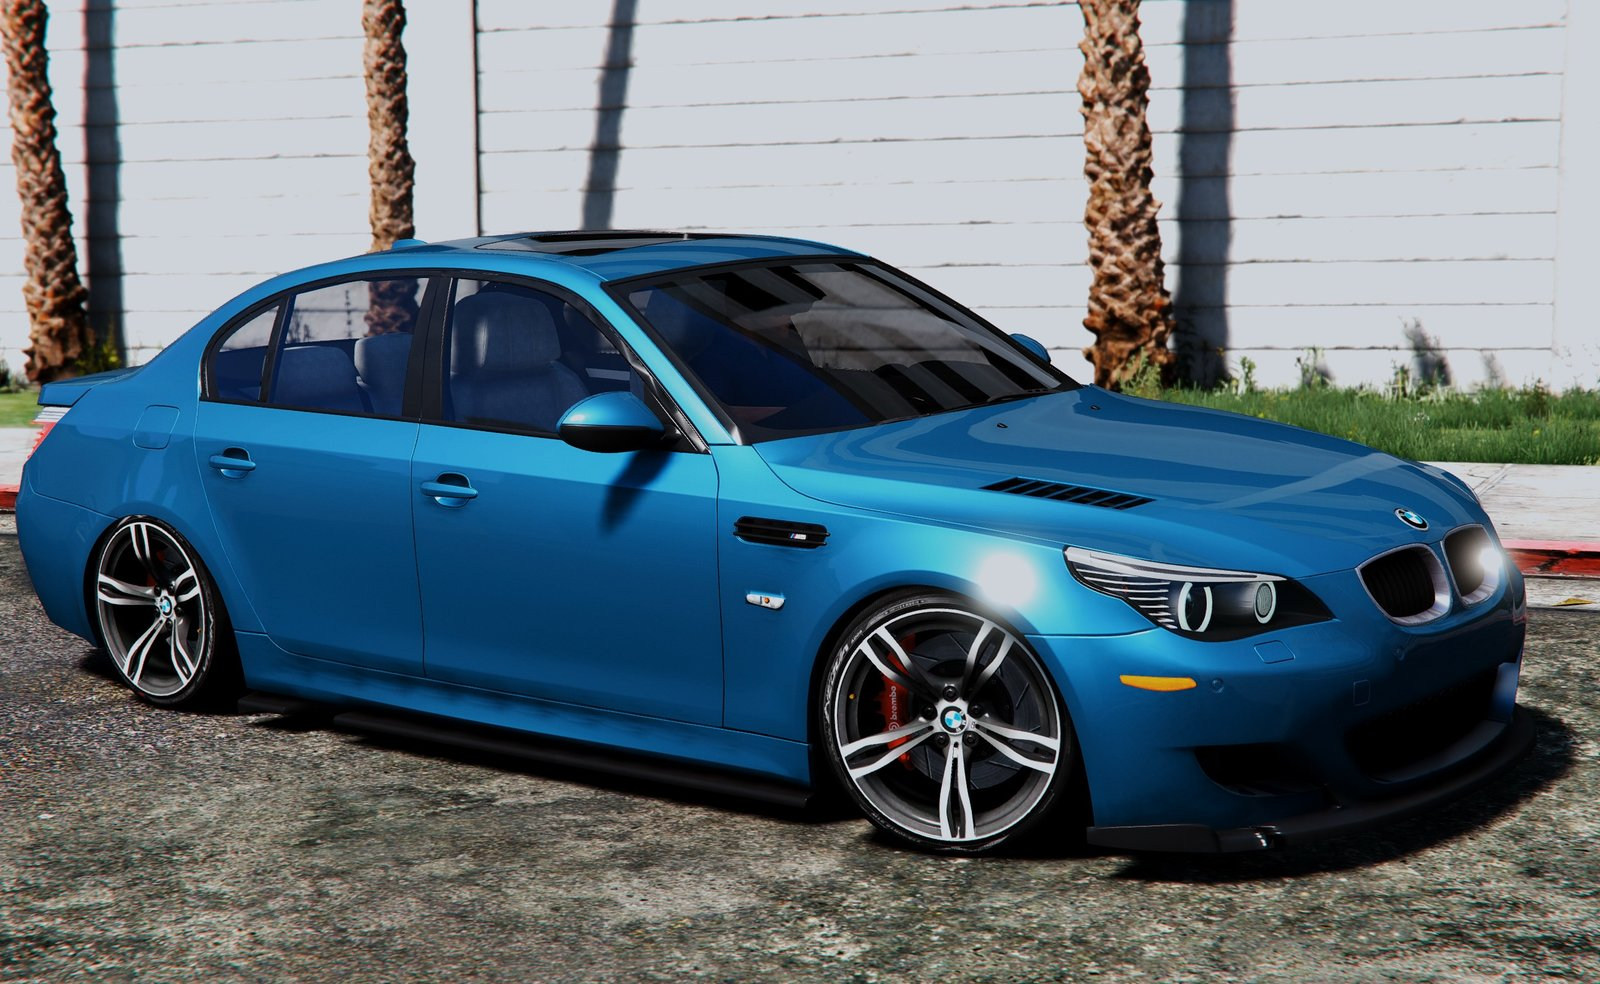 bmw m5 e60 vehicules pour gta v sur gta modding. Black Bedroom Furniture Sets. Home Design Ideas